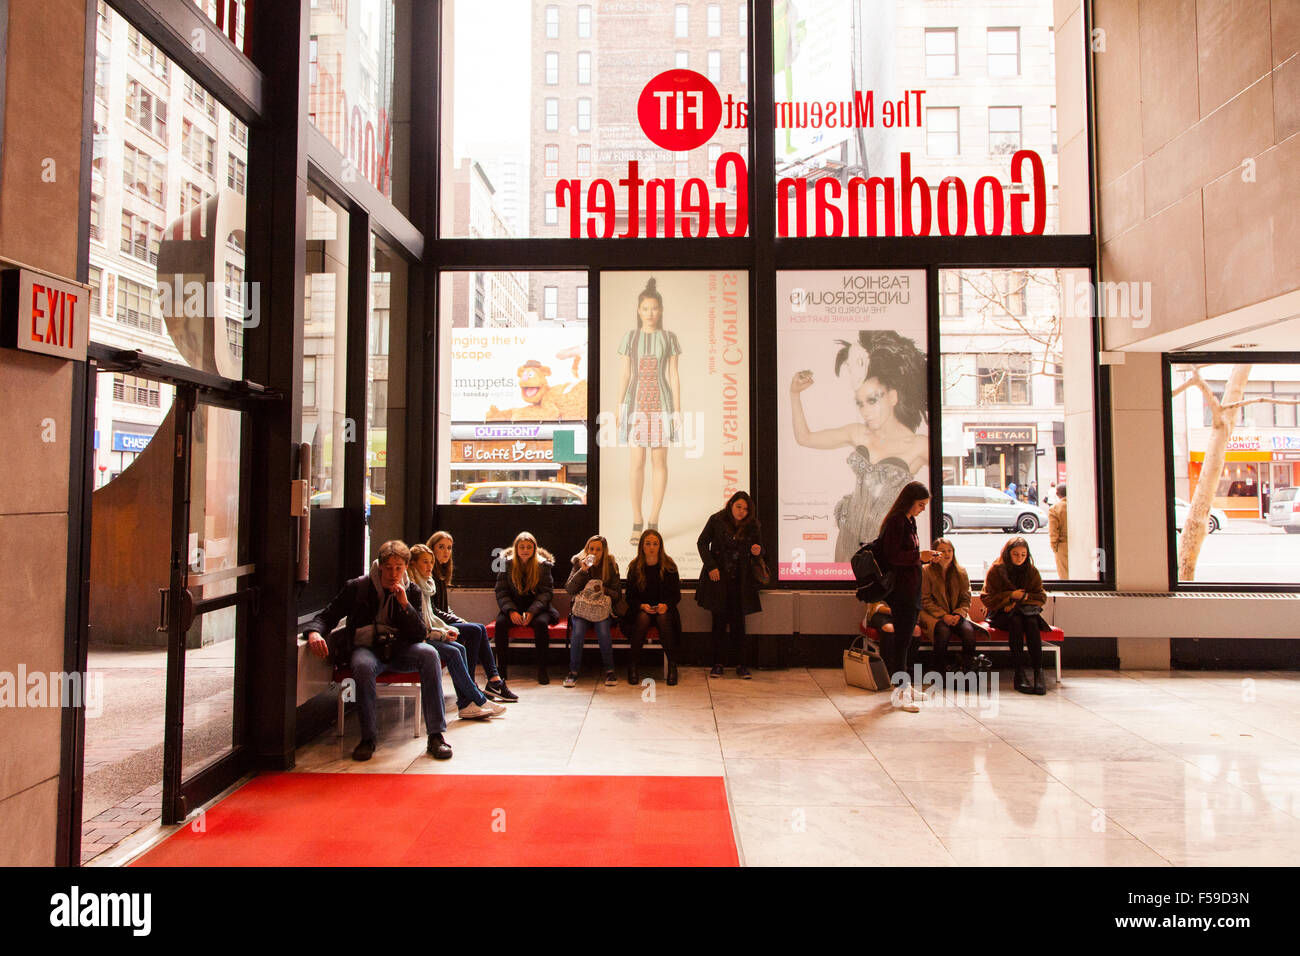 Fashion institute technology new york stock photos for Fashion museum new york